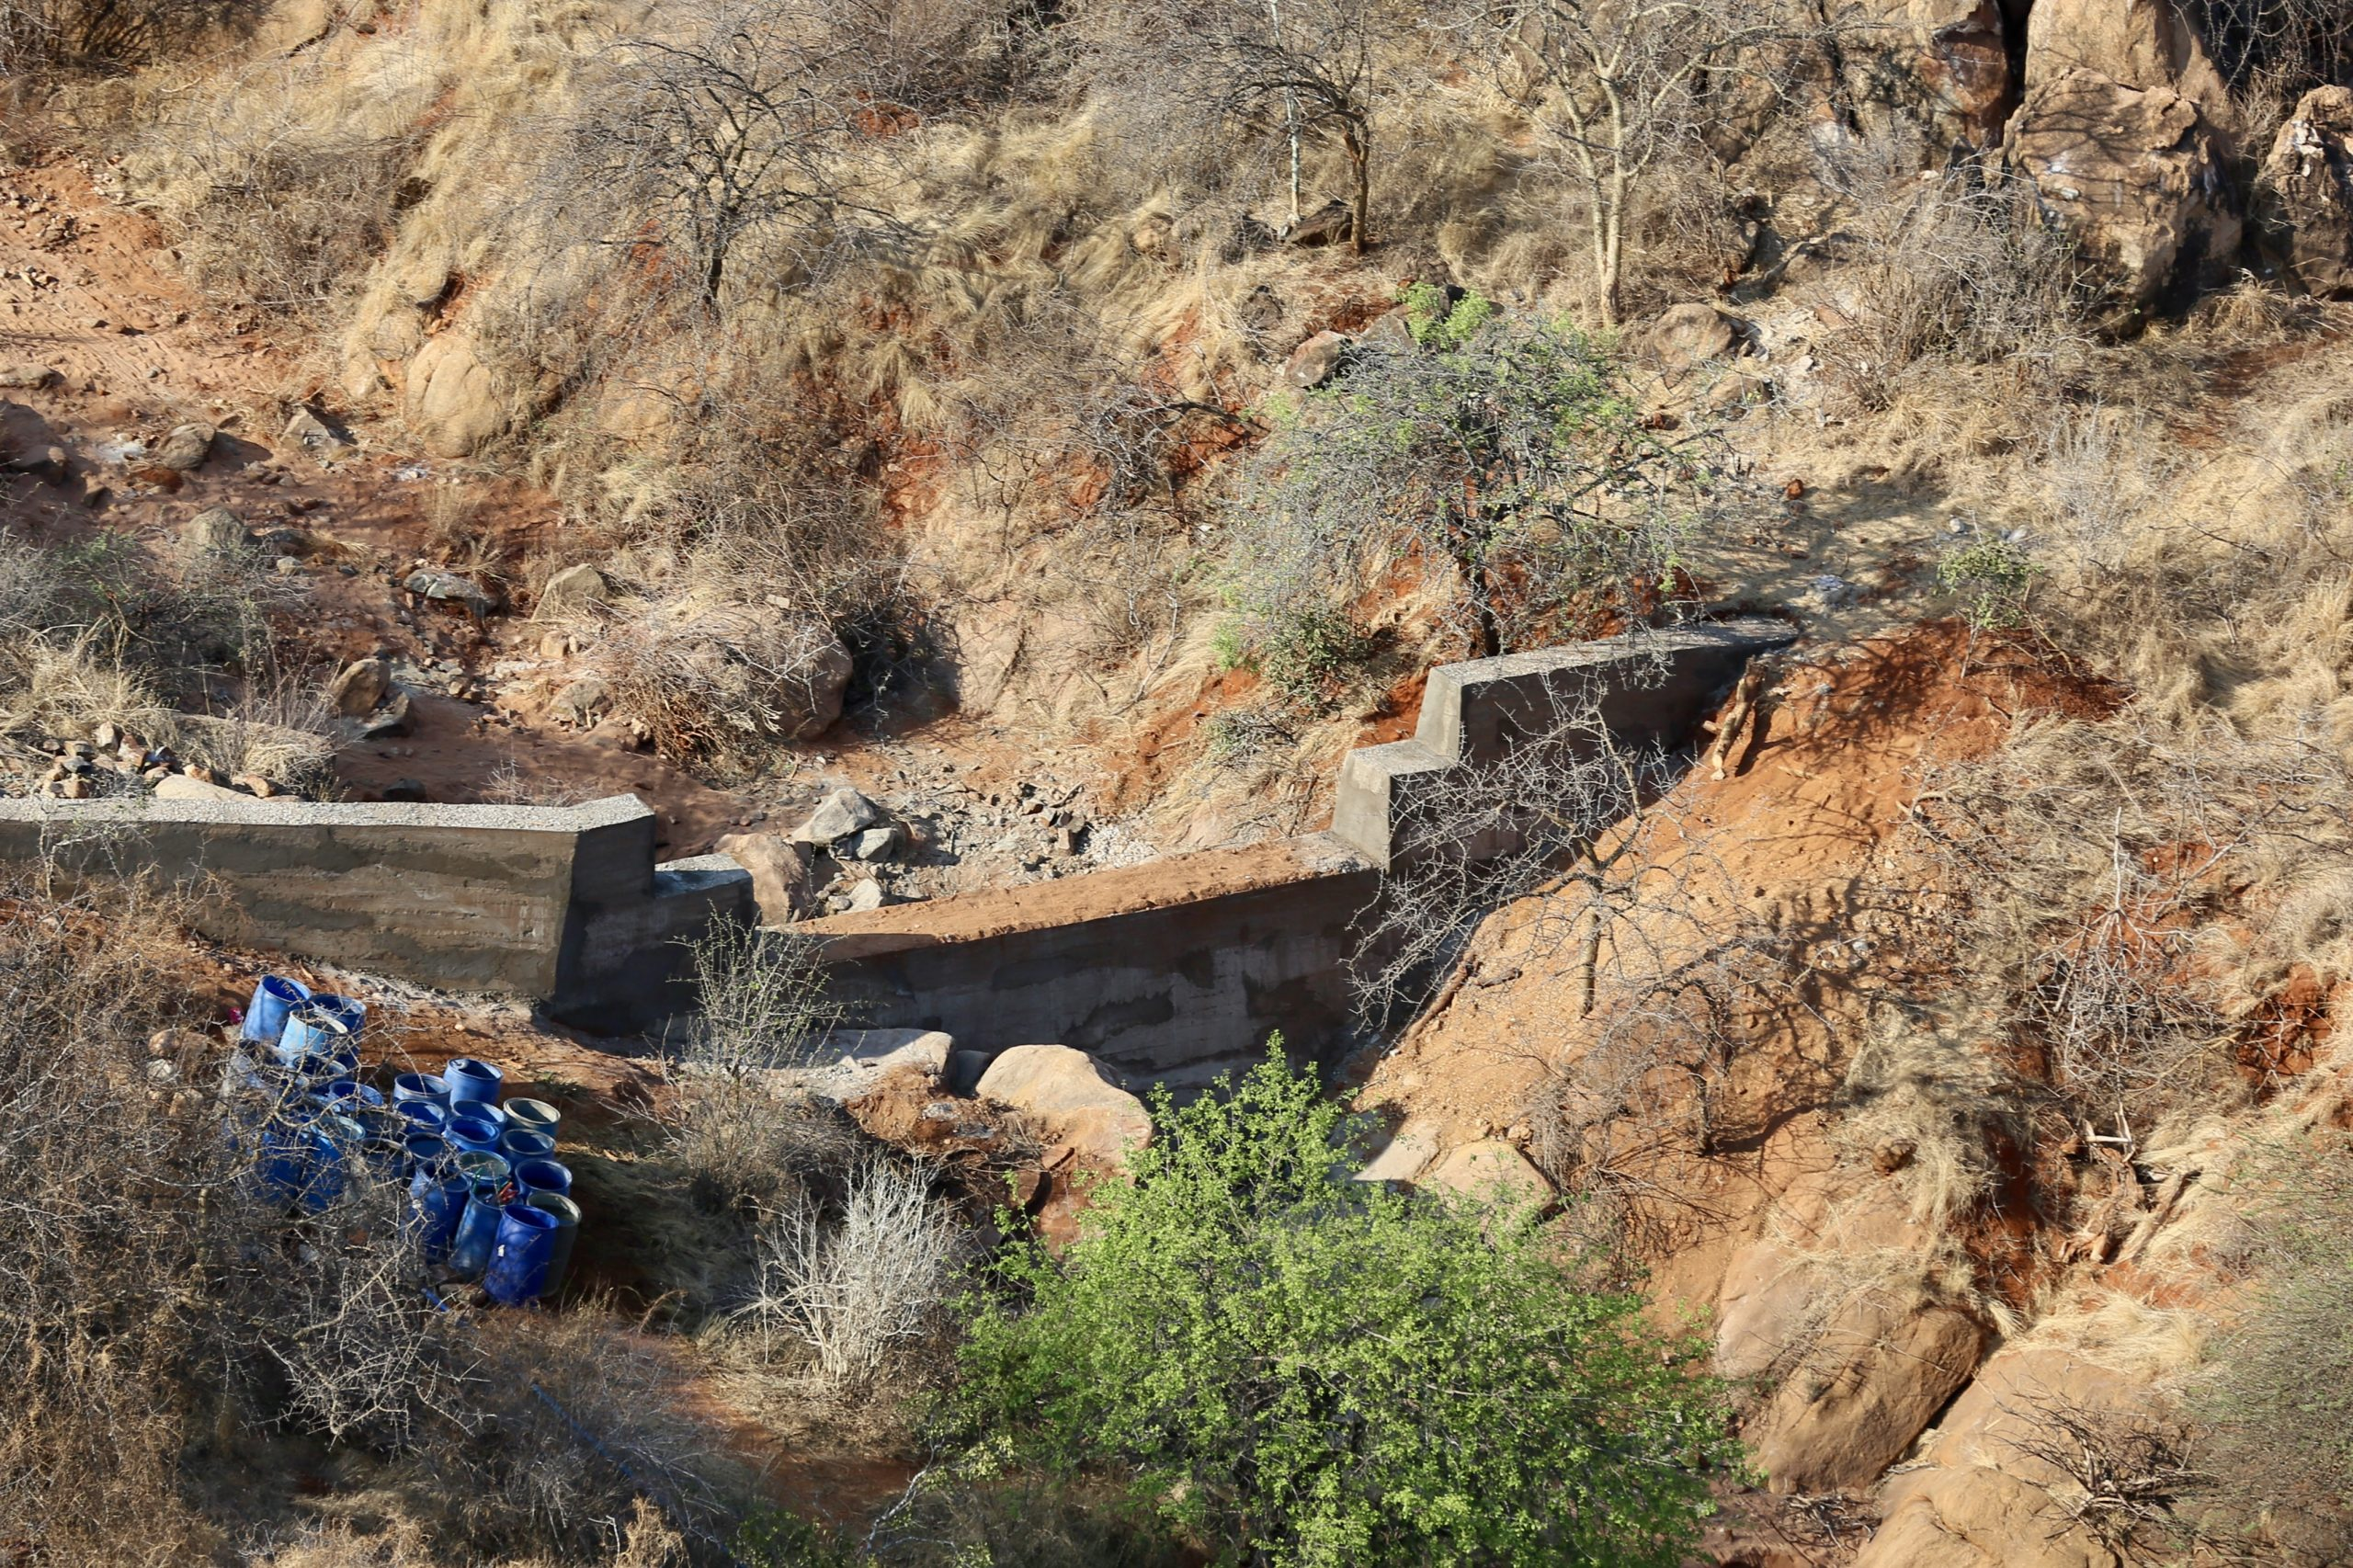 Elephant Conservation In The TCA: Sand Dams To Provide Water In Times Of Drought